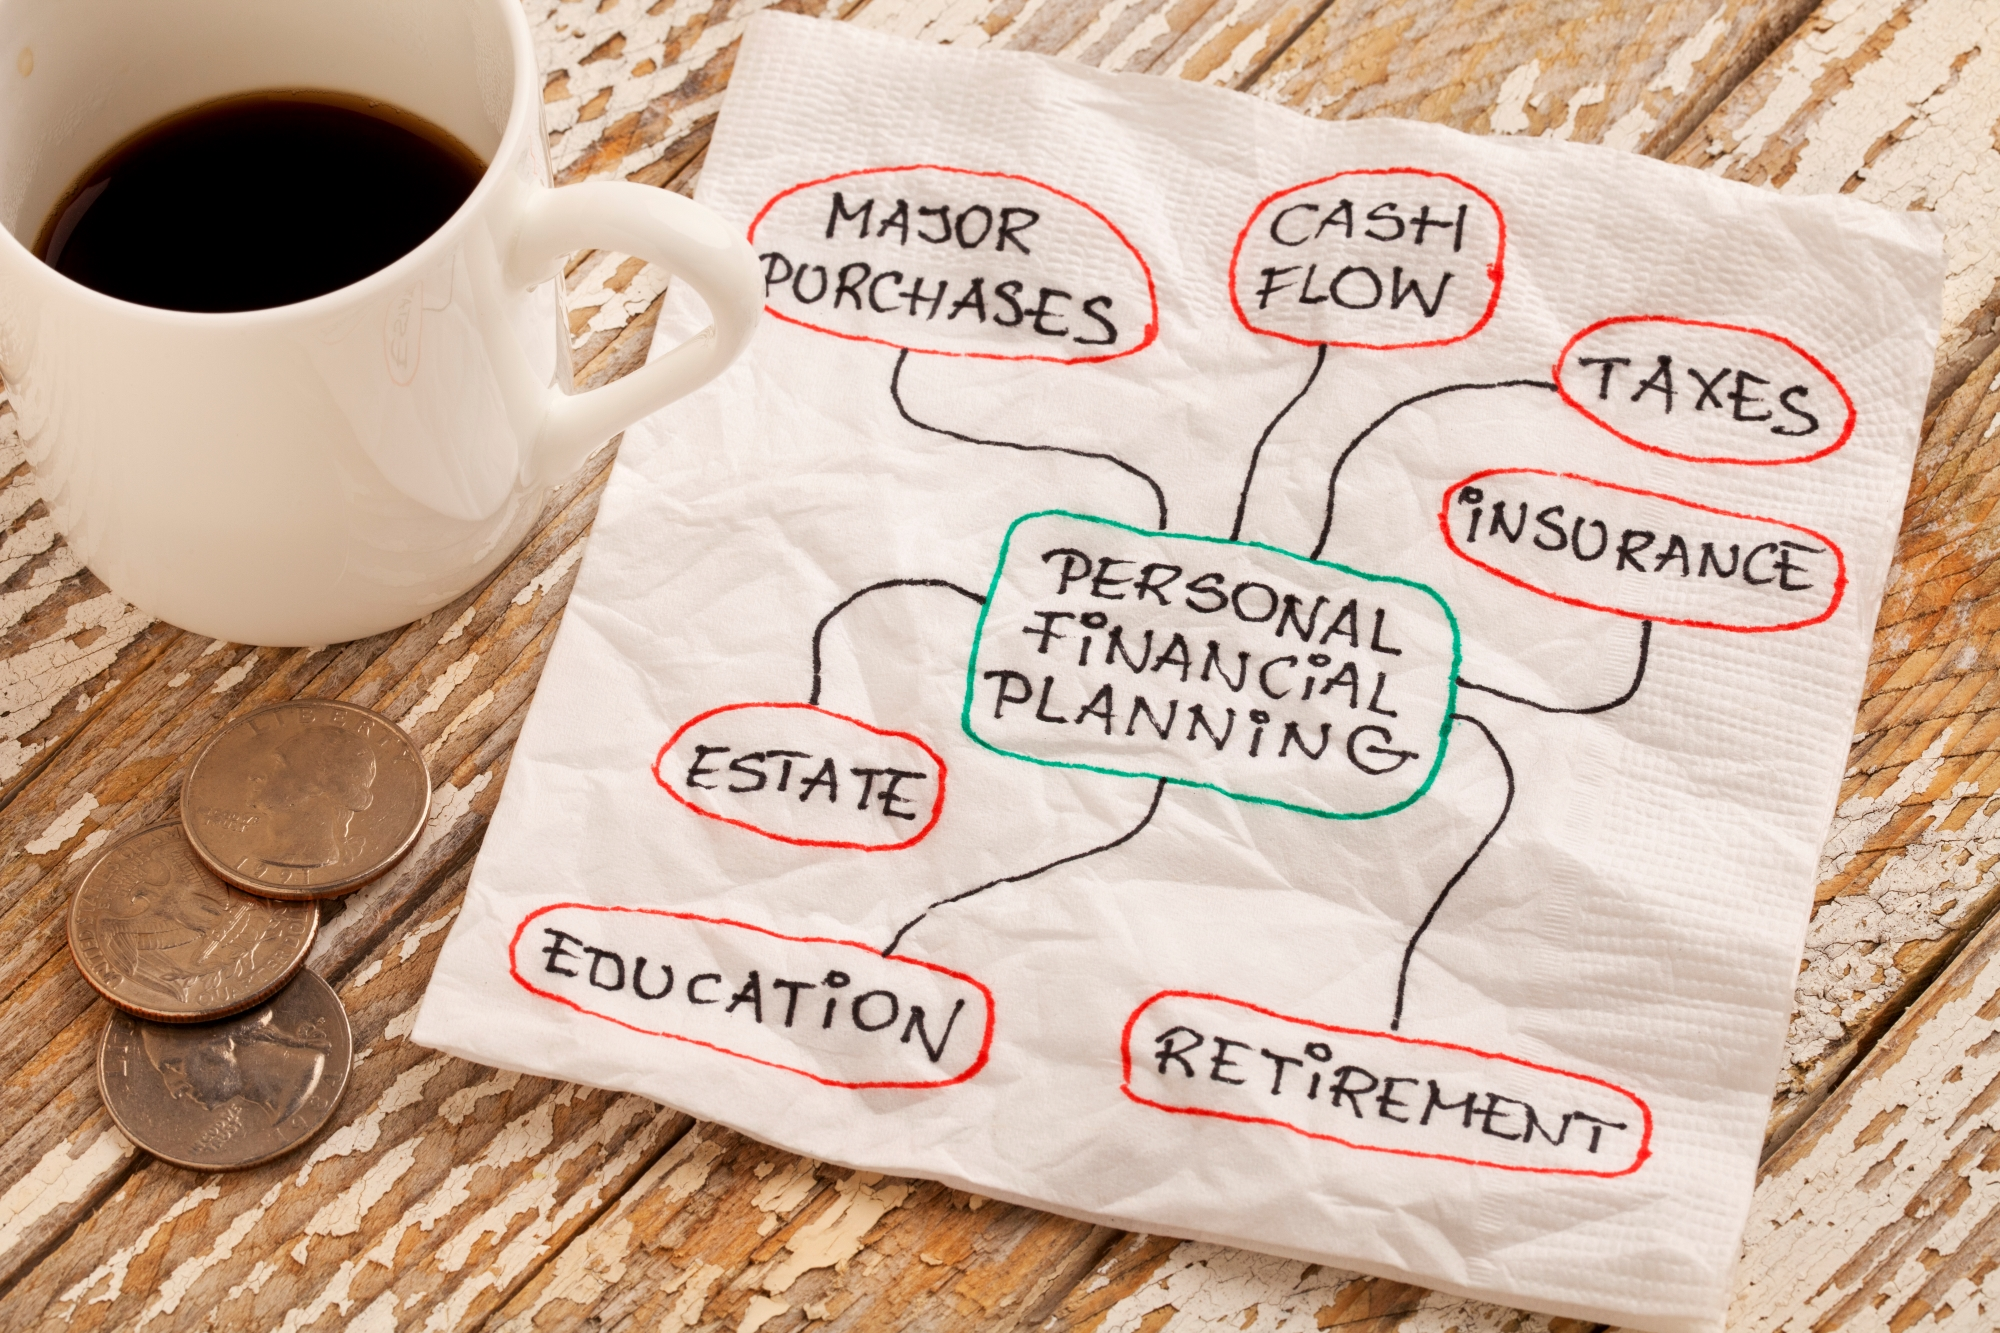 Set Your Financial Goals For 2021